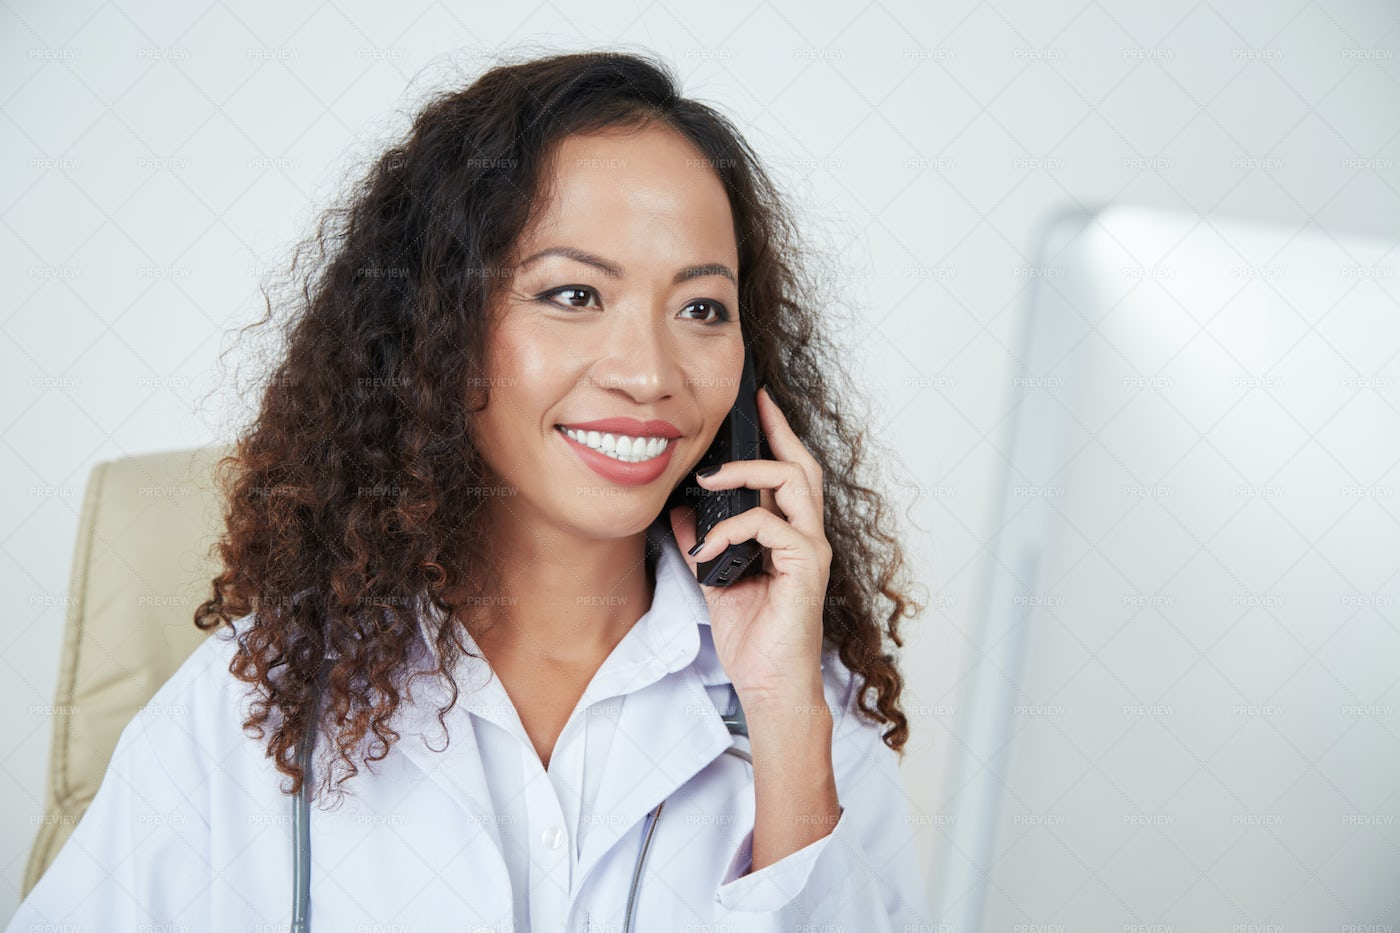 Doctor Consulting Patient On Phone: Stock Photos